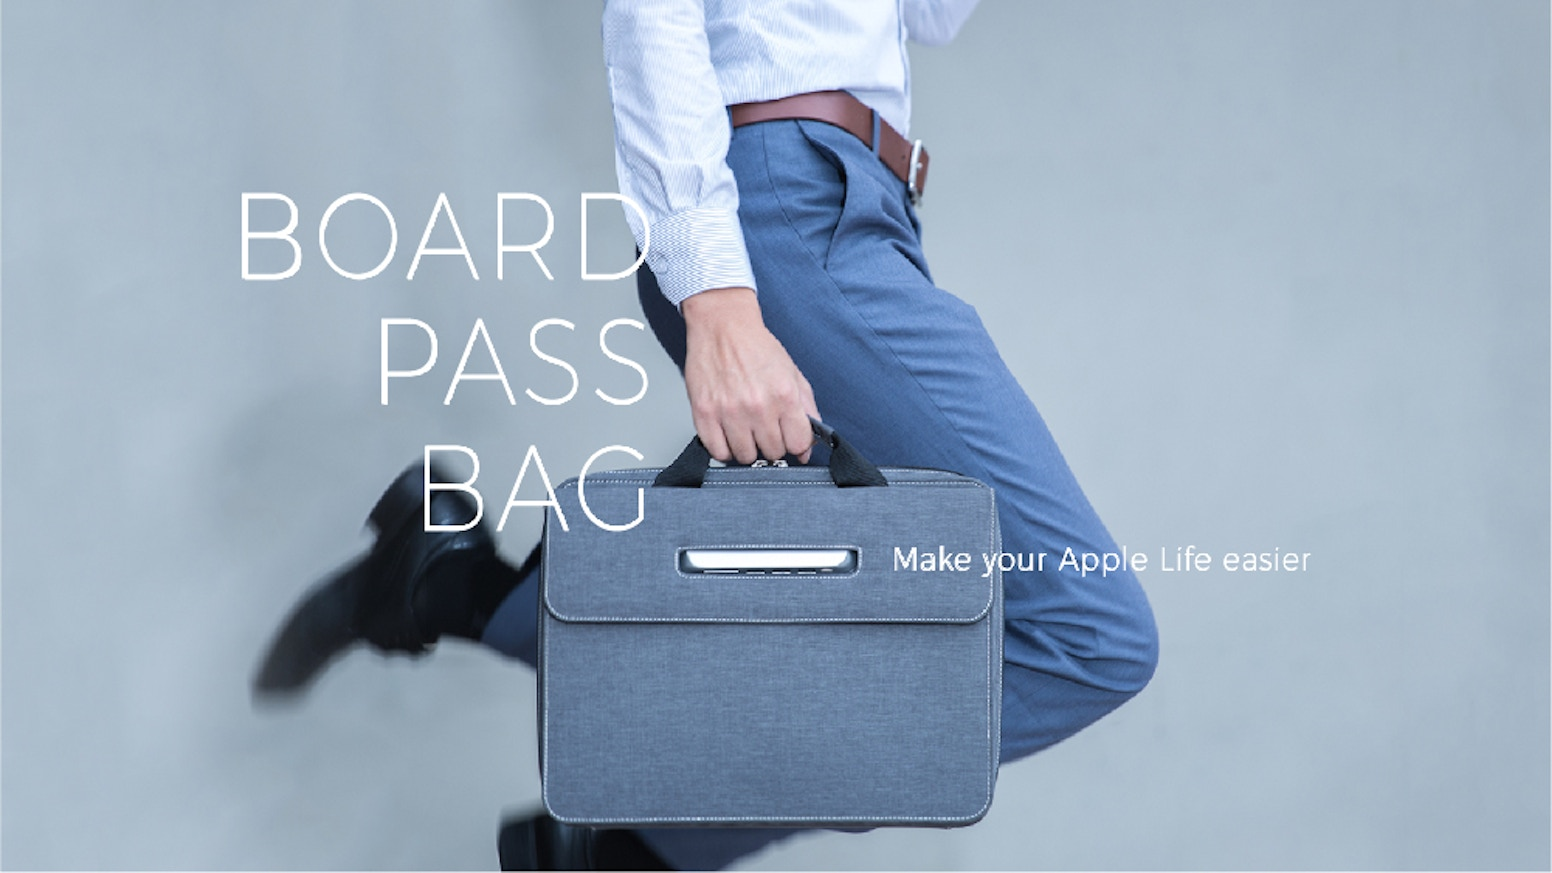 Organize your devices, organize your life. BoardPass organizer tidies up all your Apple devices, and boosts your productivity.